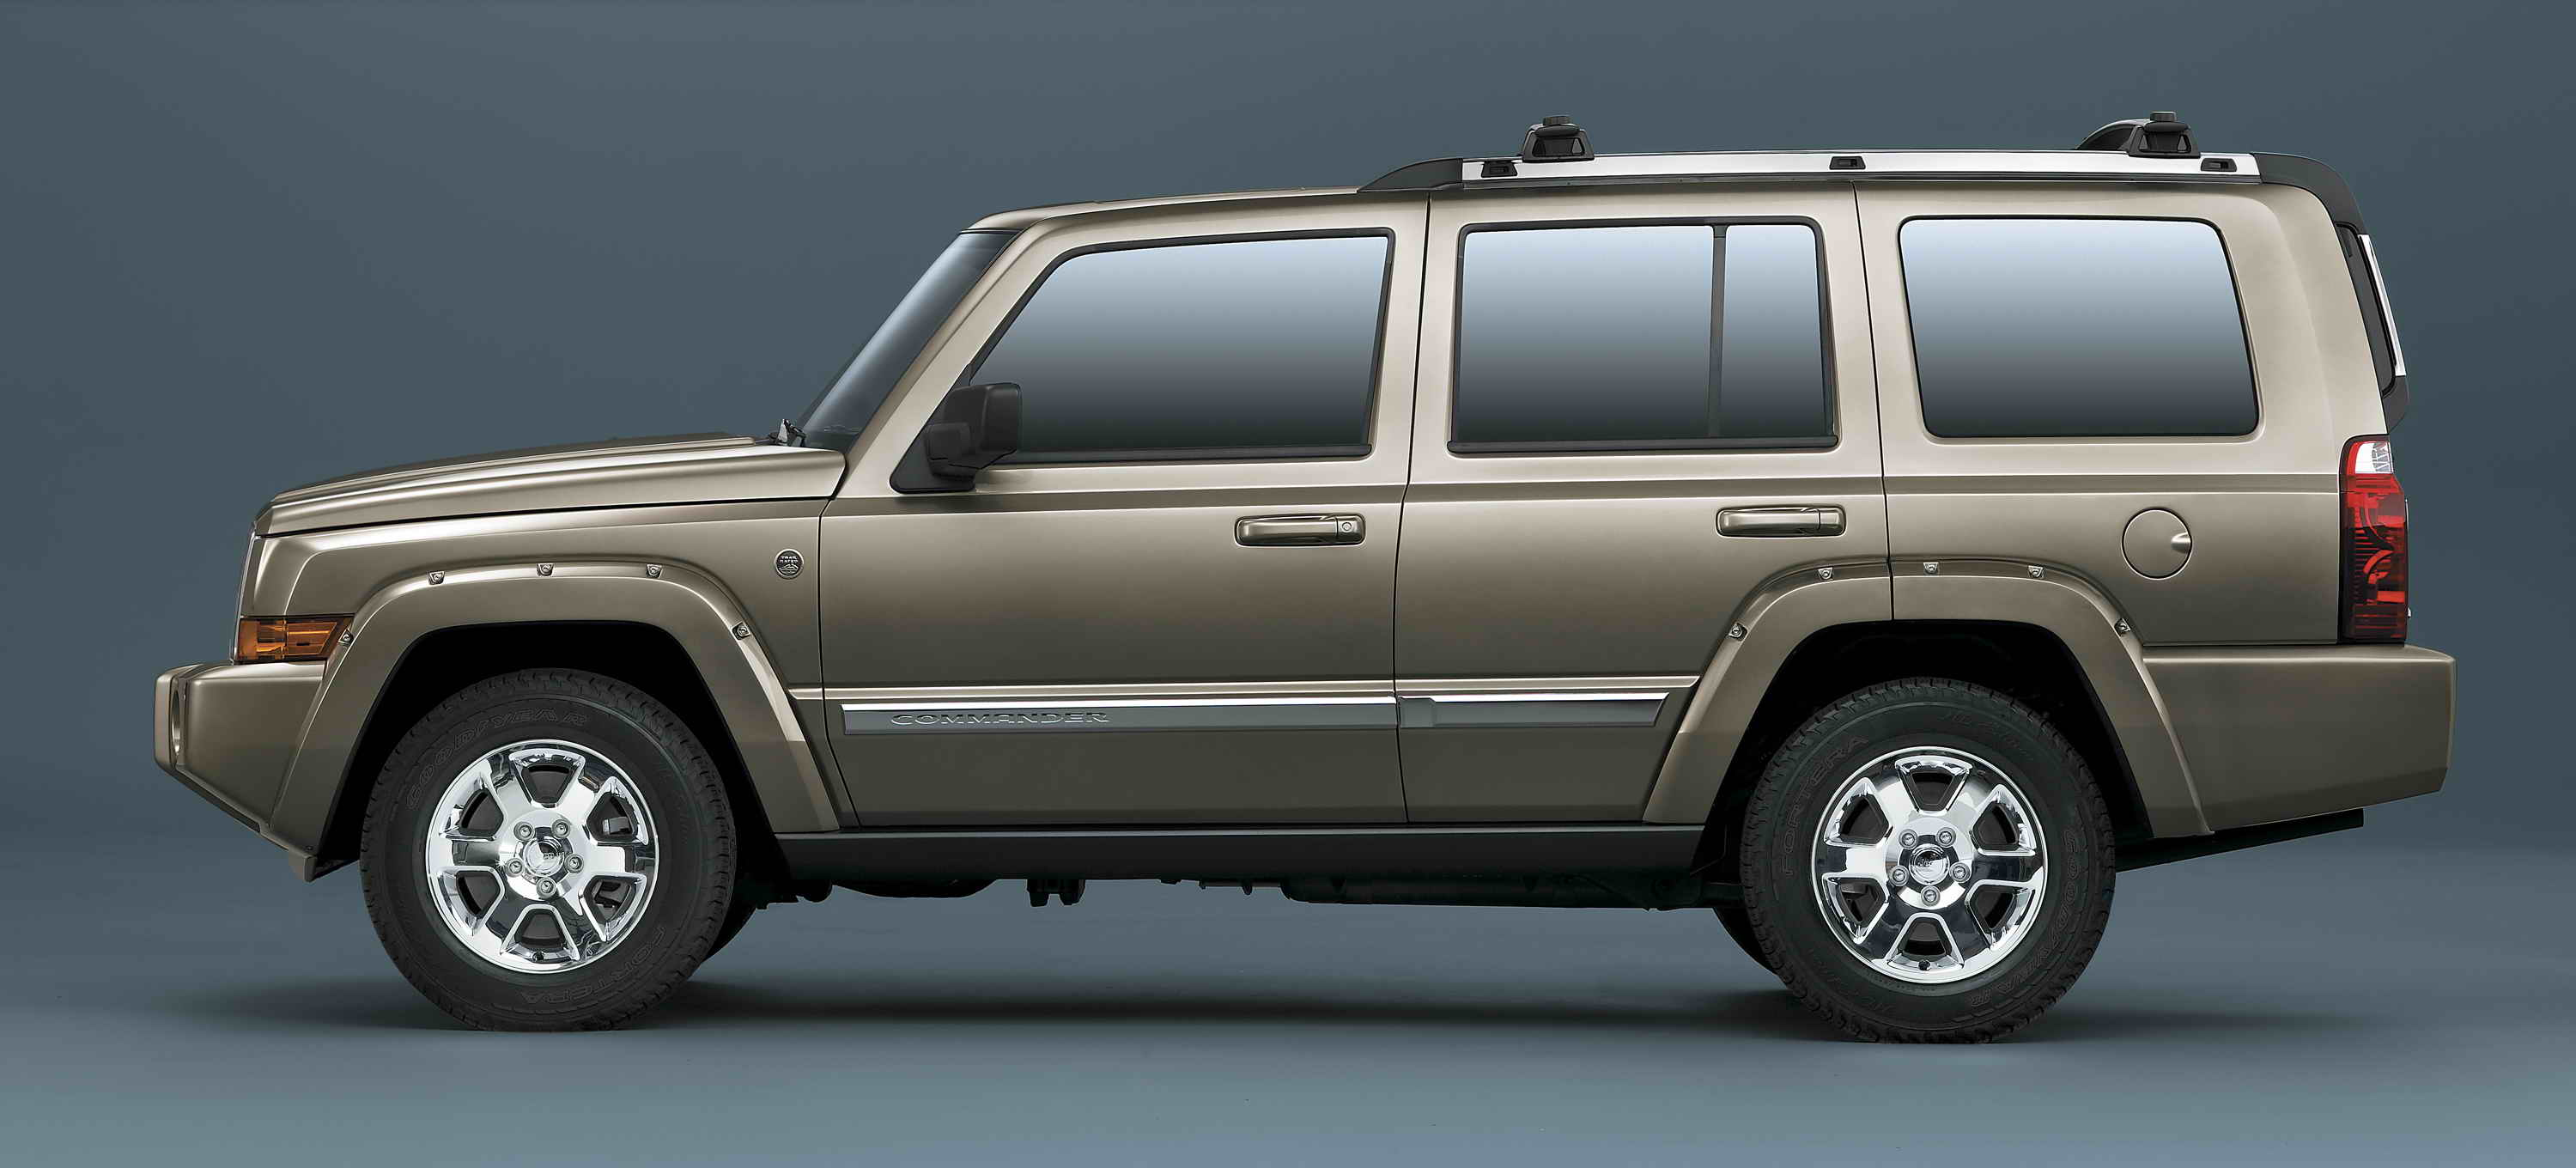 2006 jeep commander review - top speed